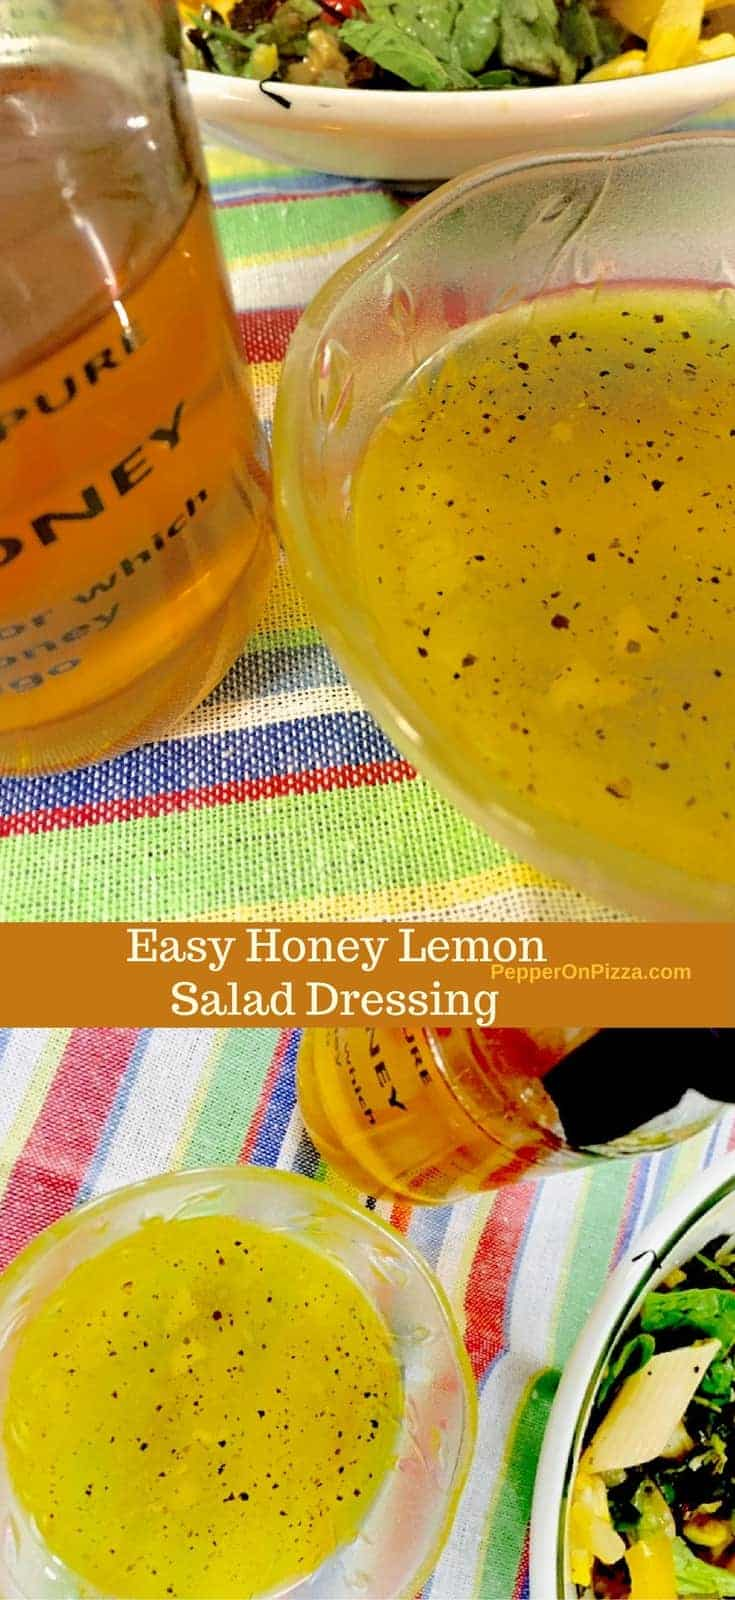 A tangy garlicky Honey Lemon Salad Dressing with the lingering taste of sweet natural Kumaon honey, this healthy dressing goes well with a green leafy salad.